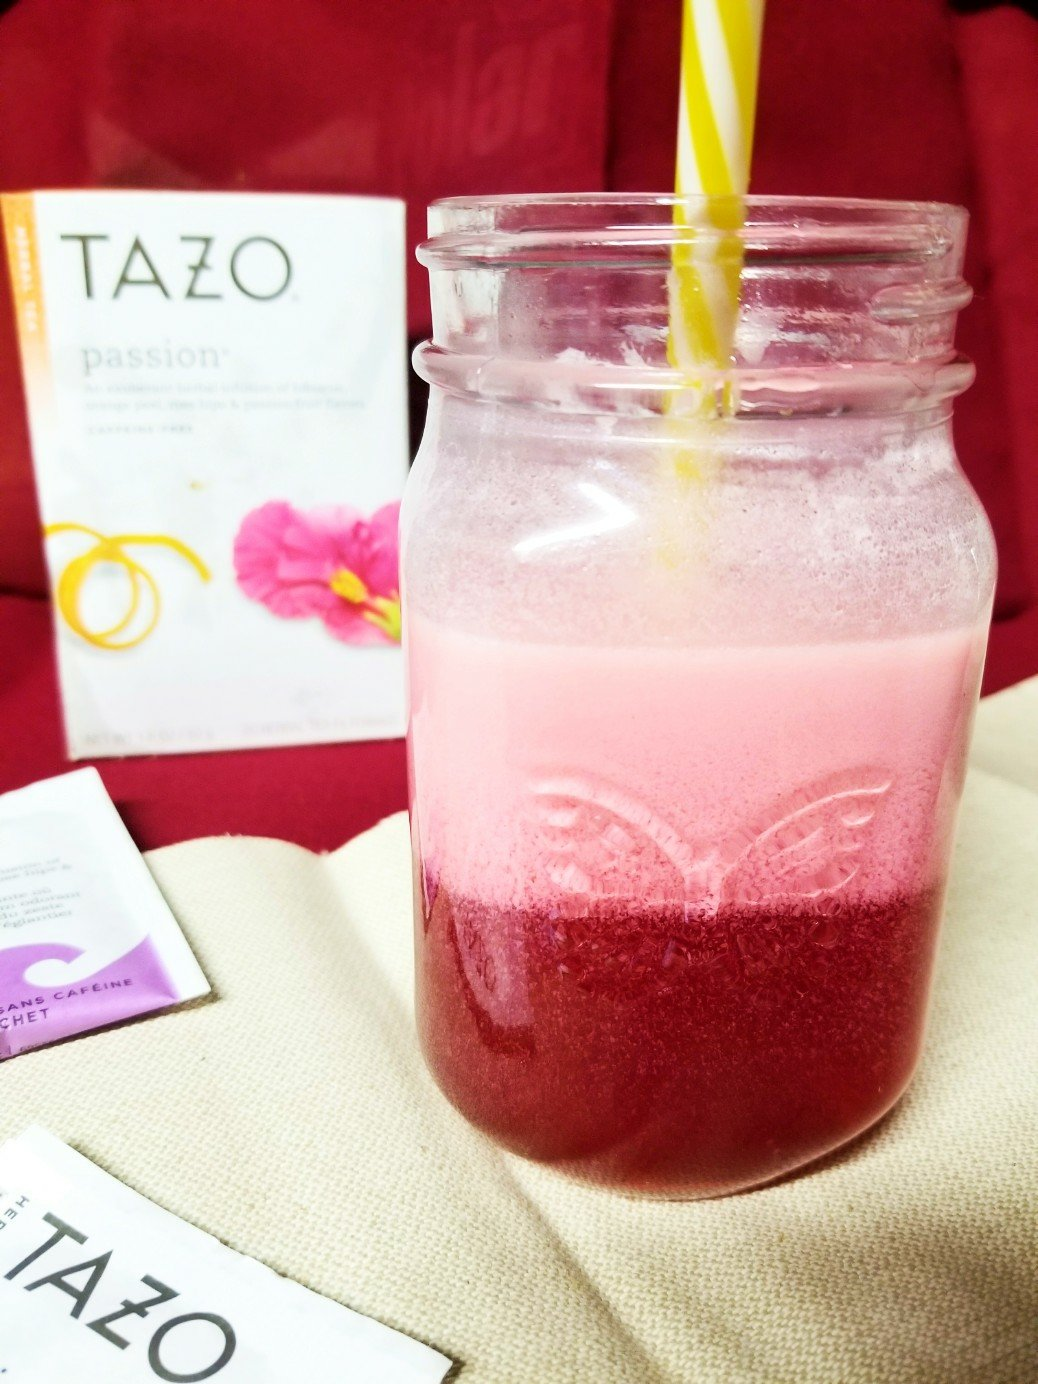 You will love this super easy kept pink drink using tea and other keto friendly ingredients. No syrup needed!